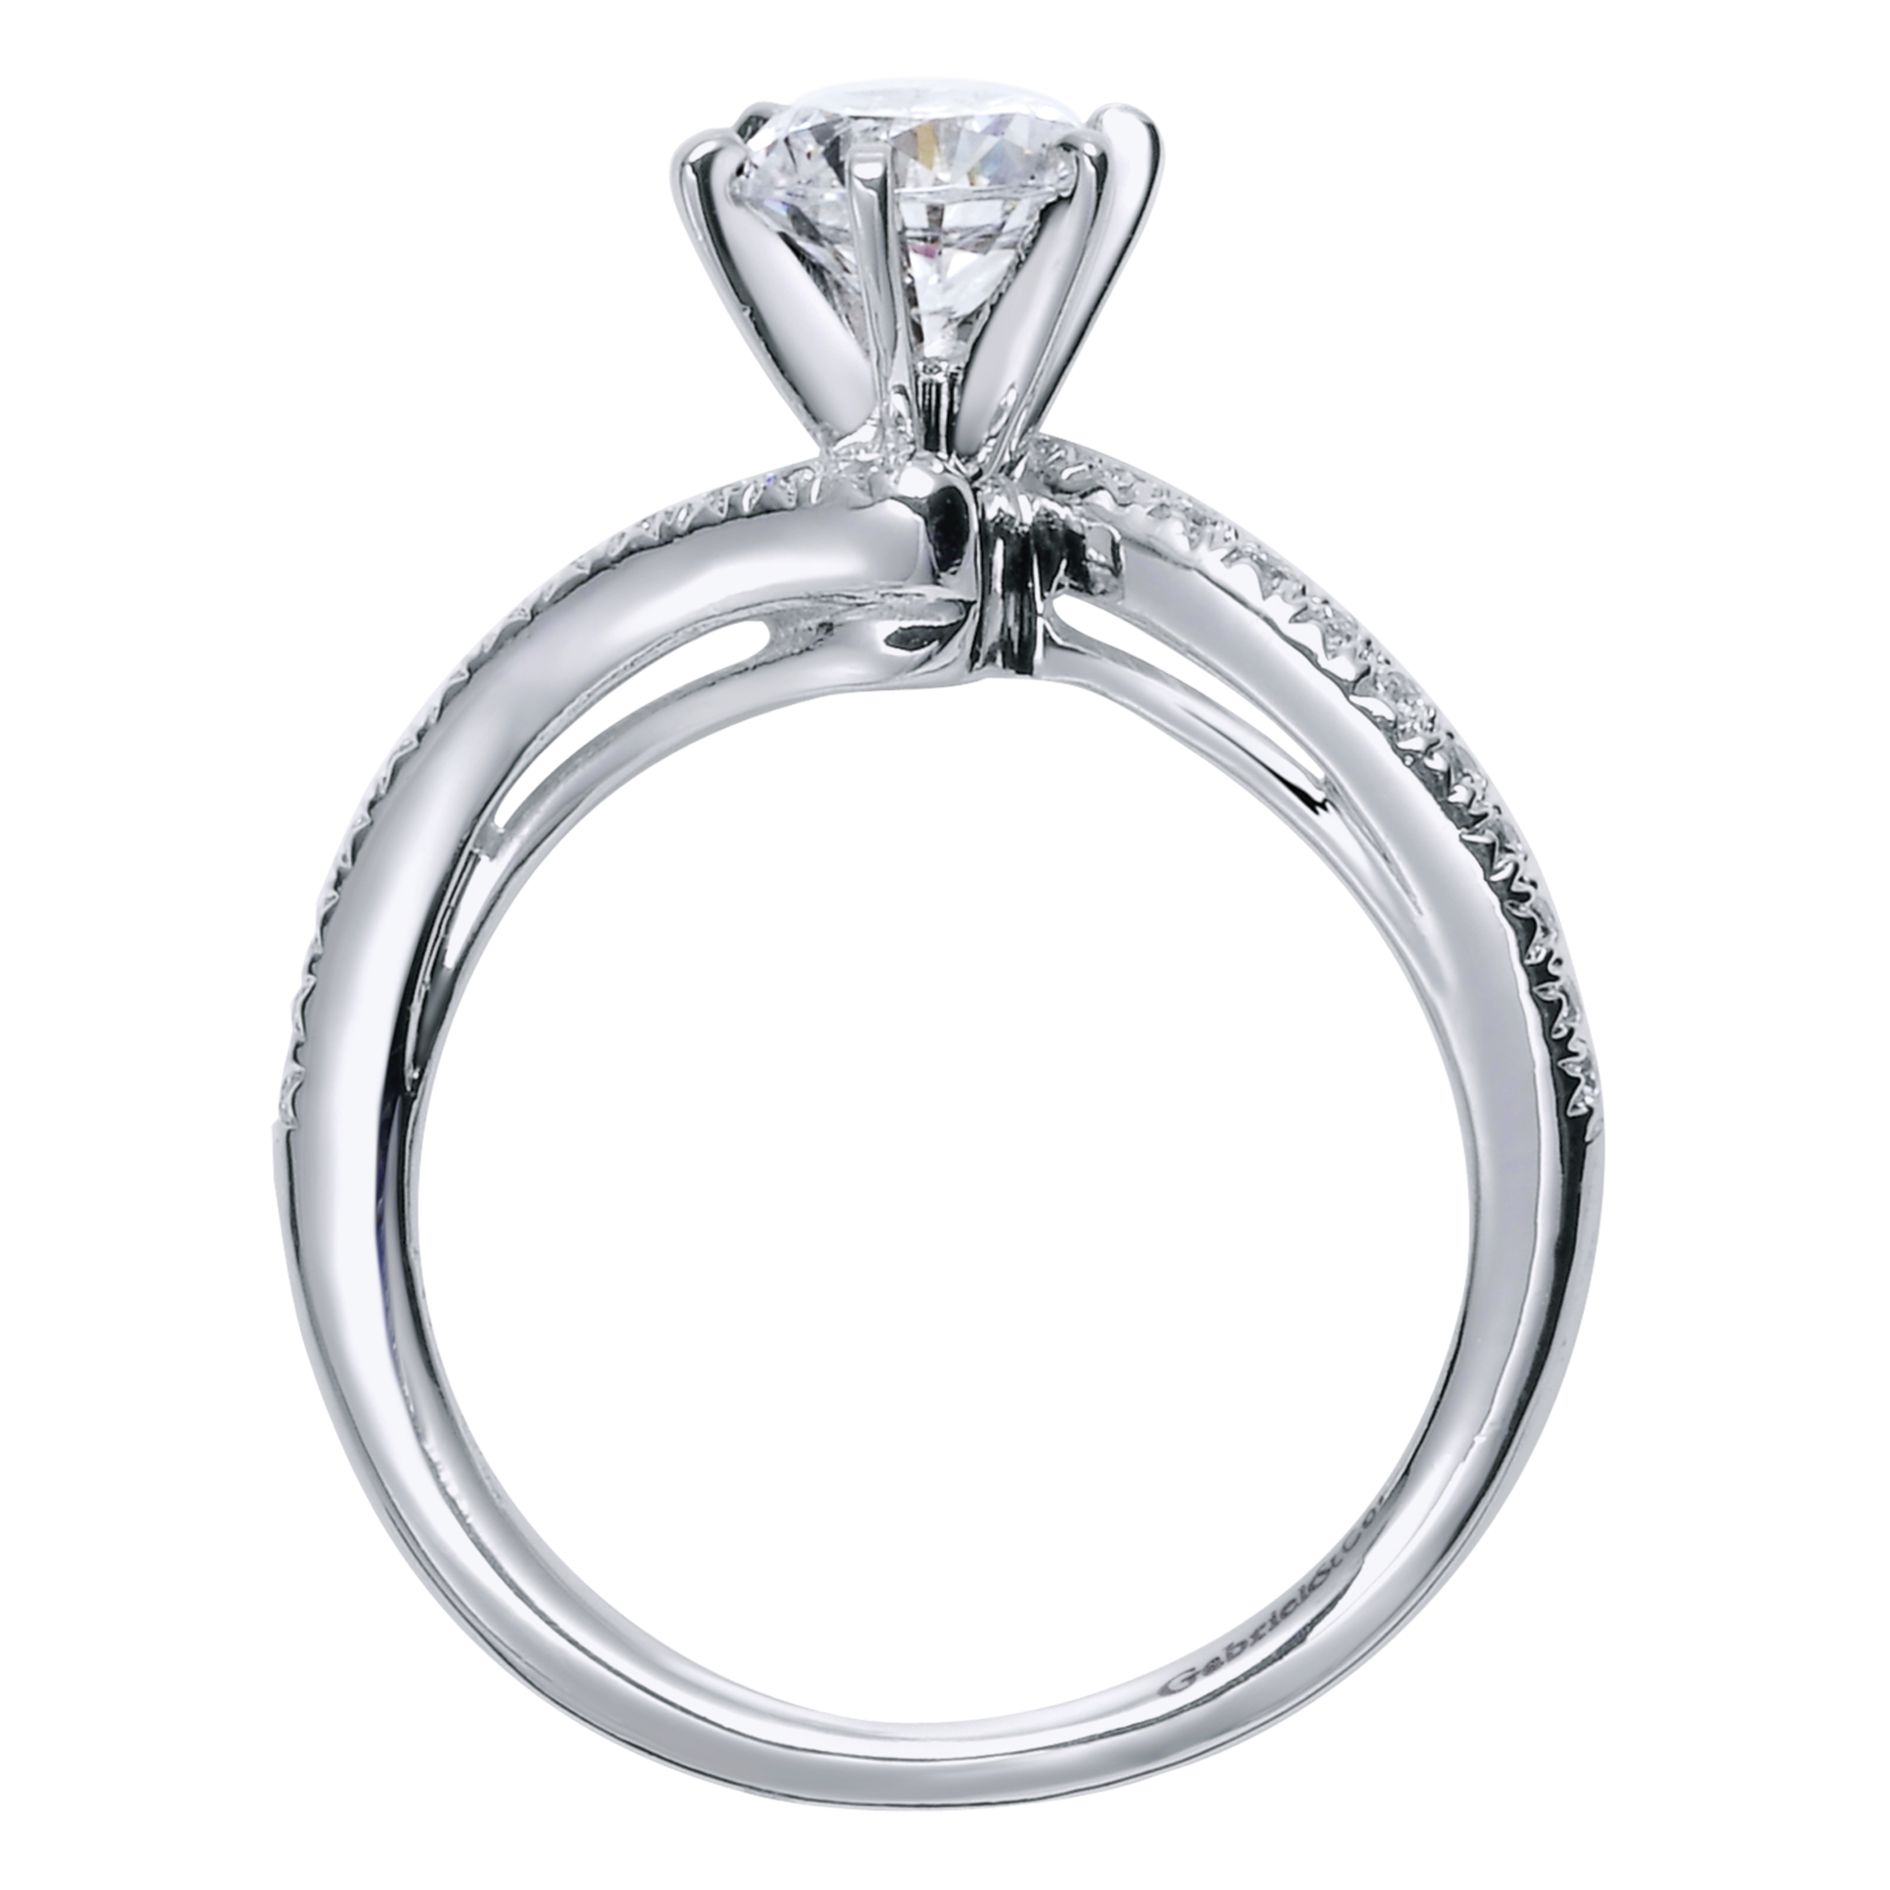 Engagement Rings - WHITE GOLD ROUND BYPASS DIAMOND ENGAGEMENT RING - image #3